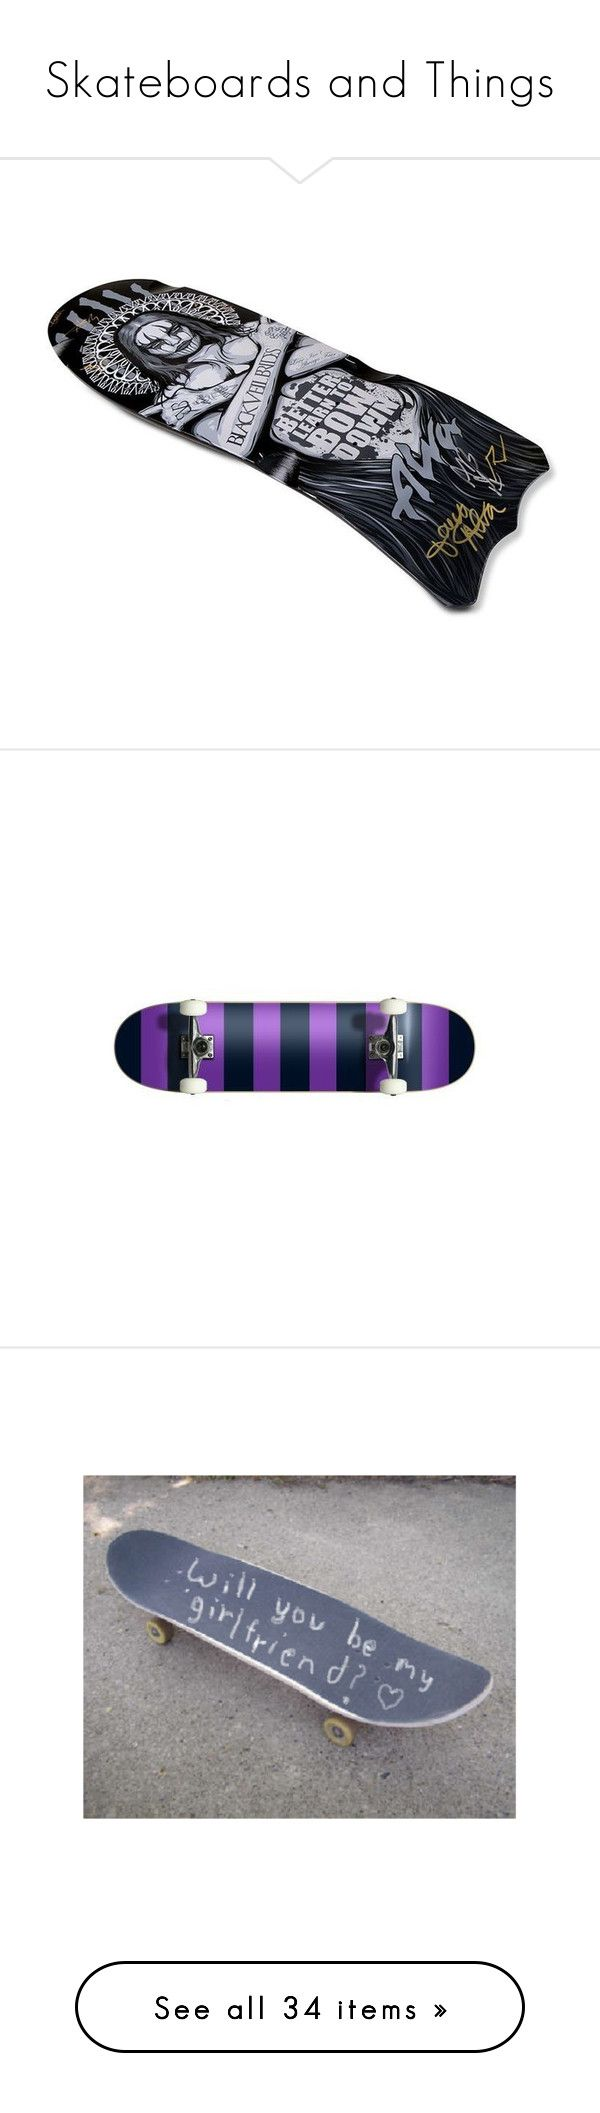 Plan layout plan b skateboarding myspace layout bedroom layout plan -  Skateboards And Things By Chrissy Cdm Liked On Polyvore Featuring Skate